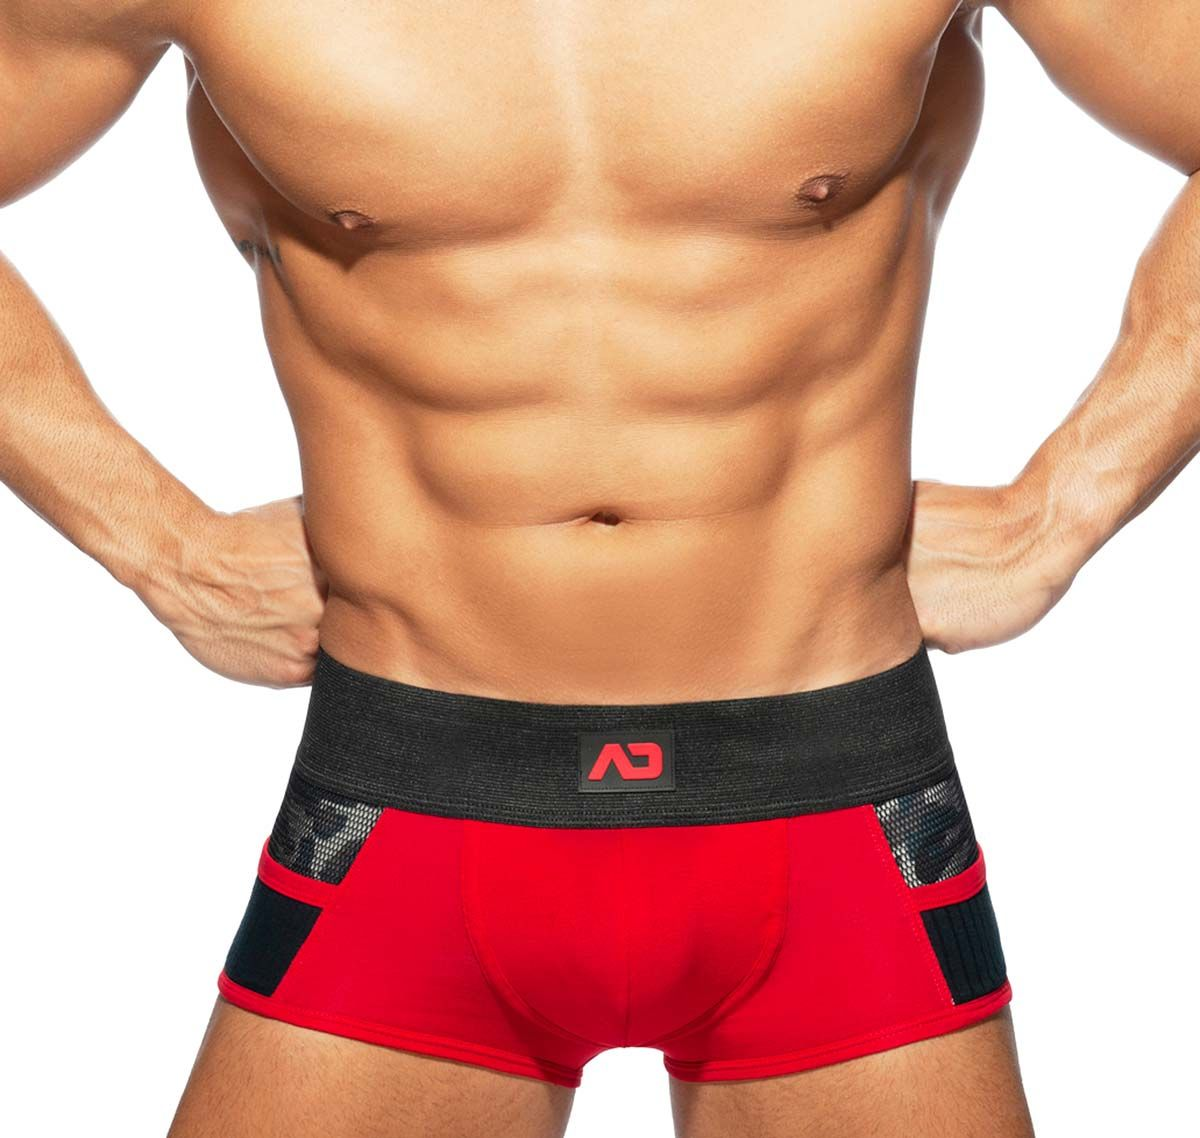 Addicted bóxer ARMY COMBI TRUNK AD784, rojo